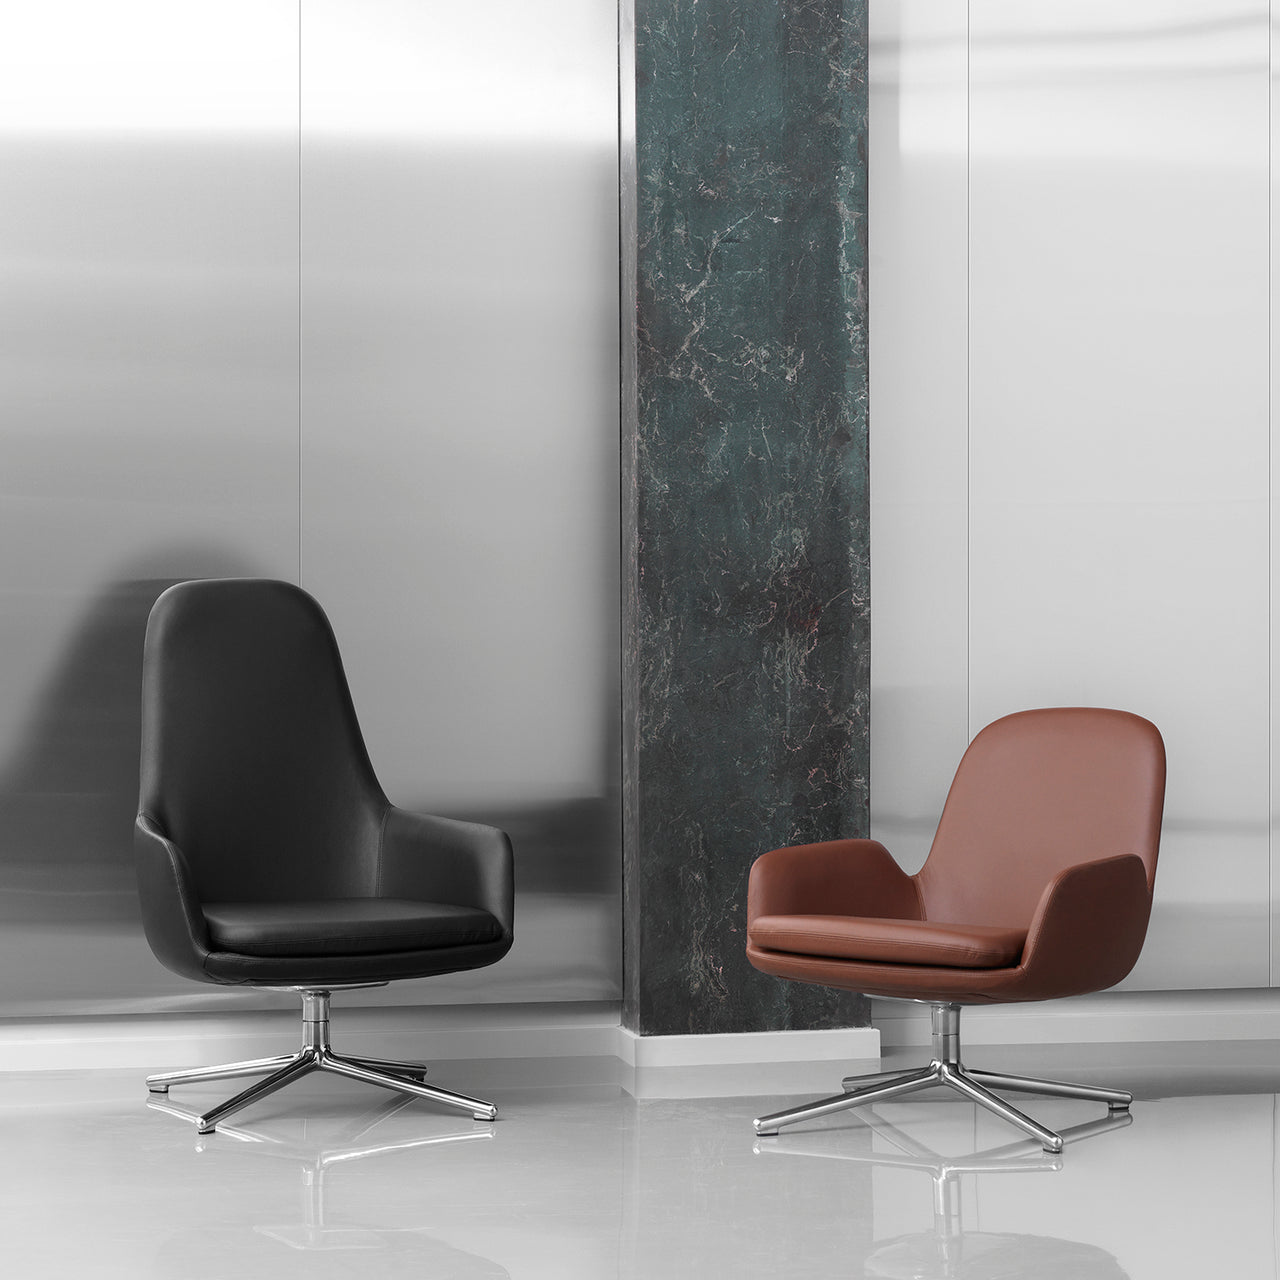 Era Lounge Chair Swivel: Low